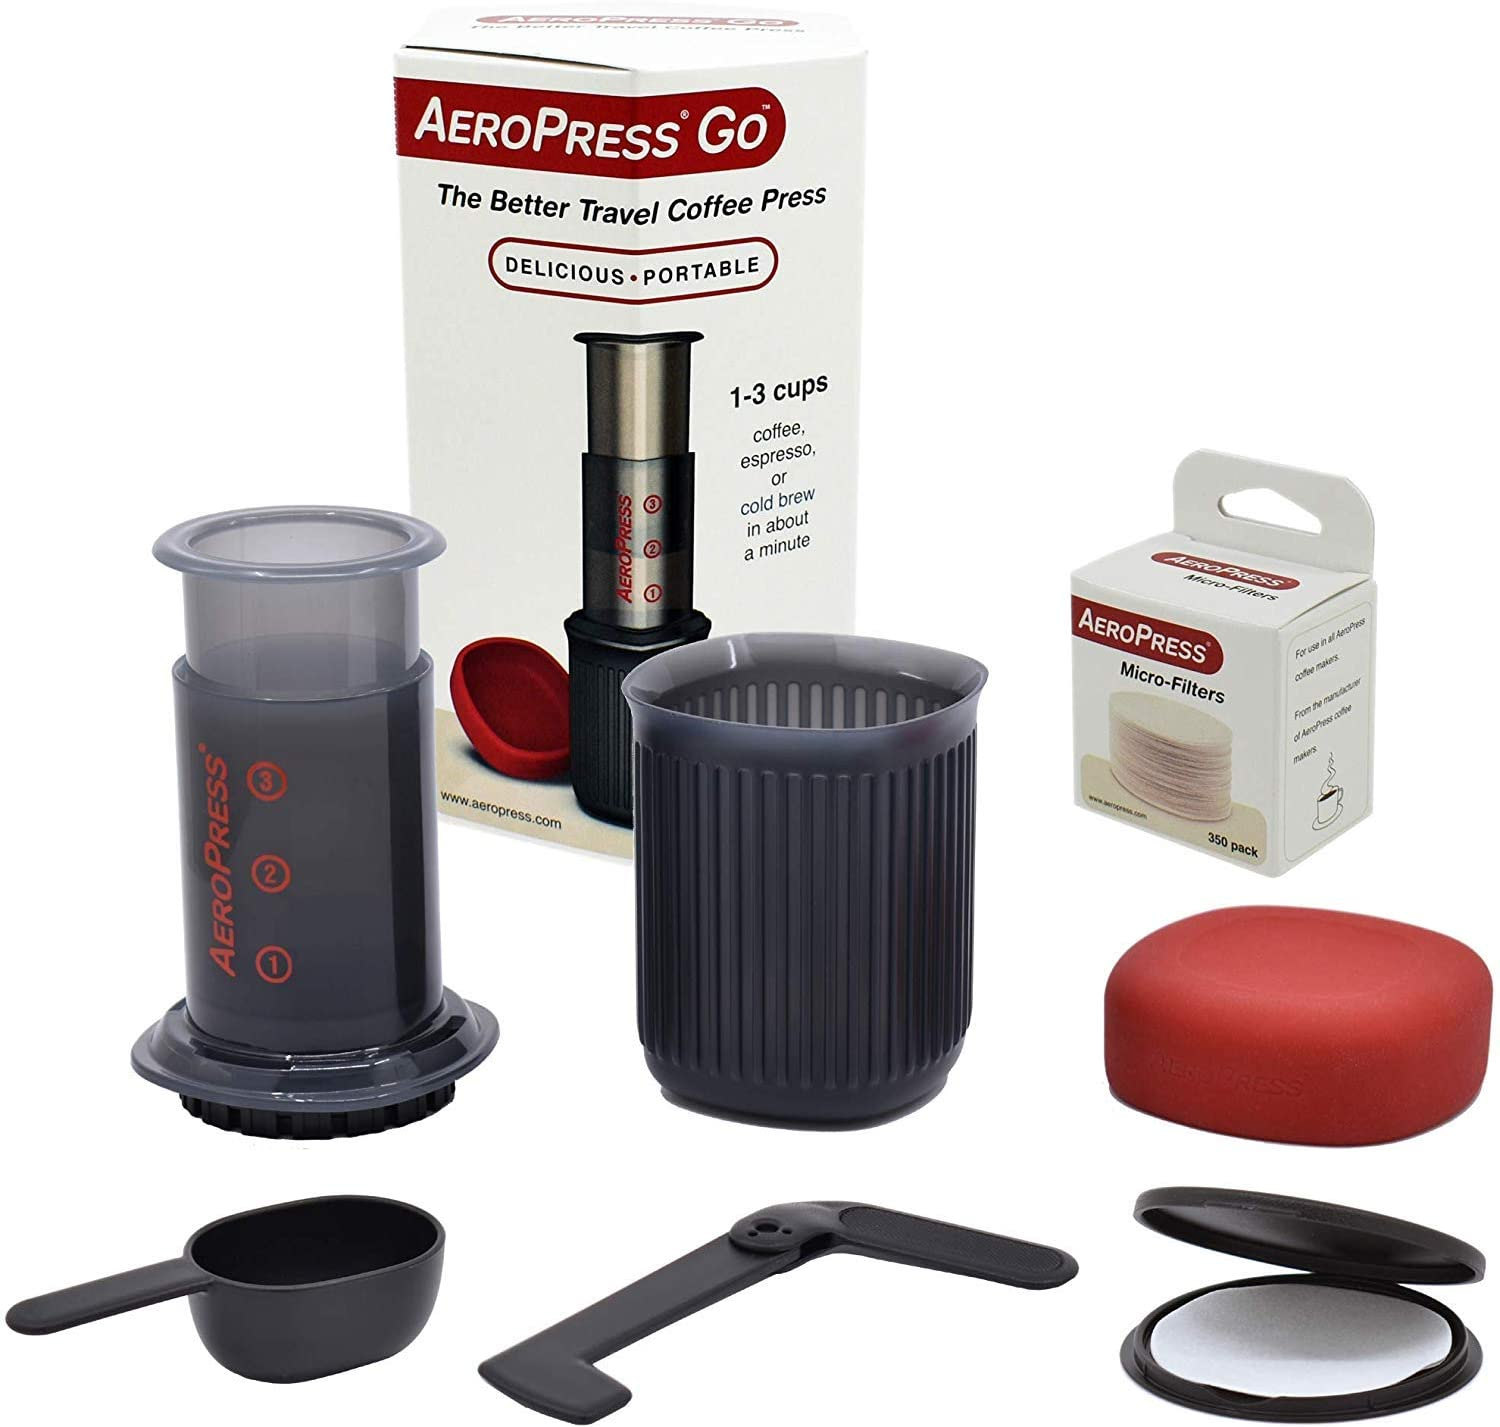 AeroPress Go Travel Coffee Maker